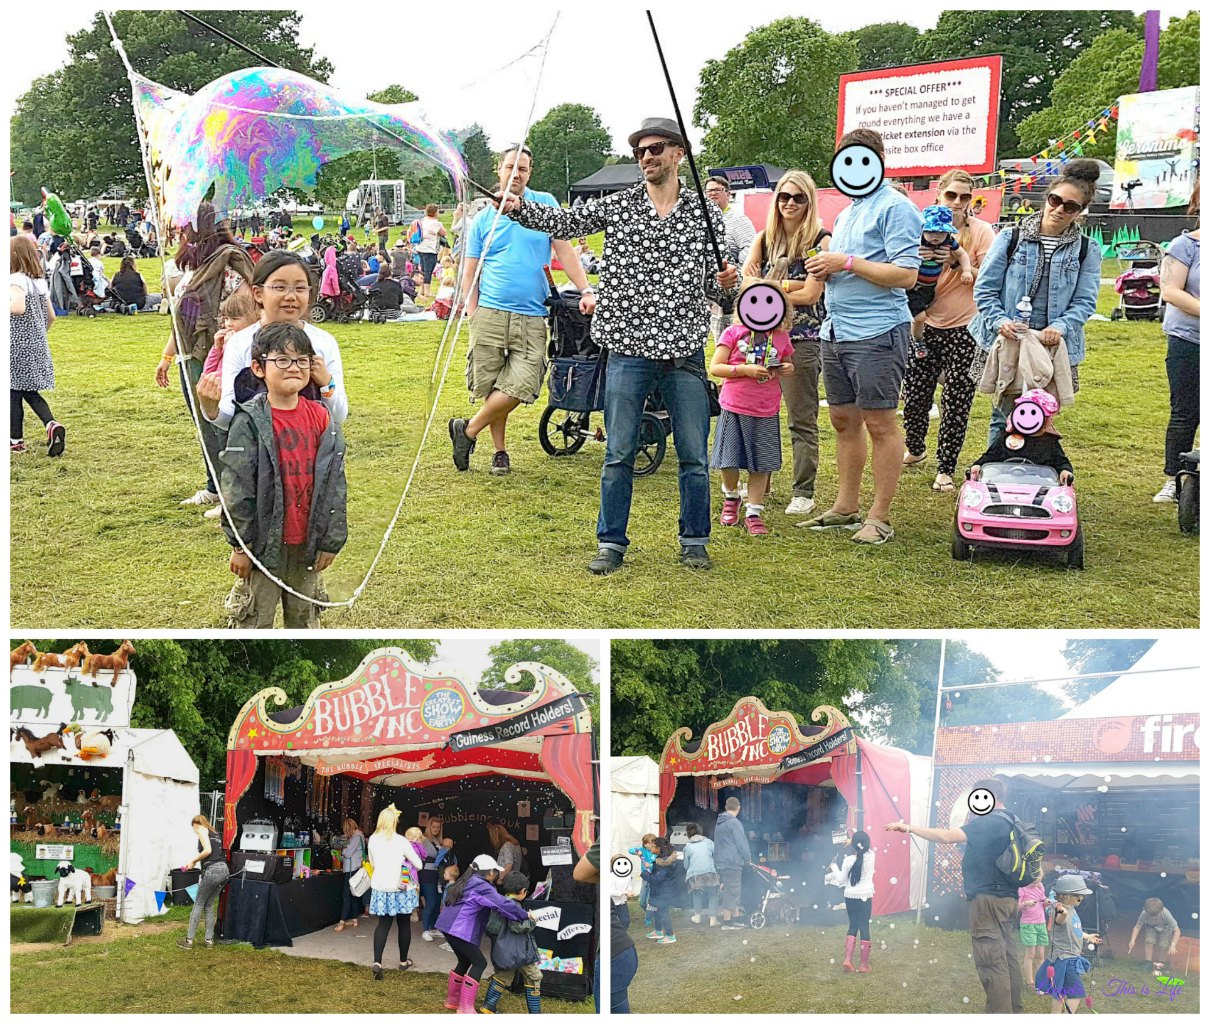 Geronimo Family Festival 2017, Summer Festival for Kids, Family Day Out May Half Term